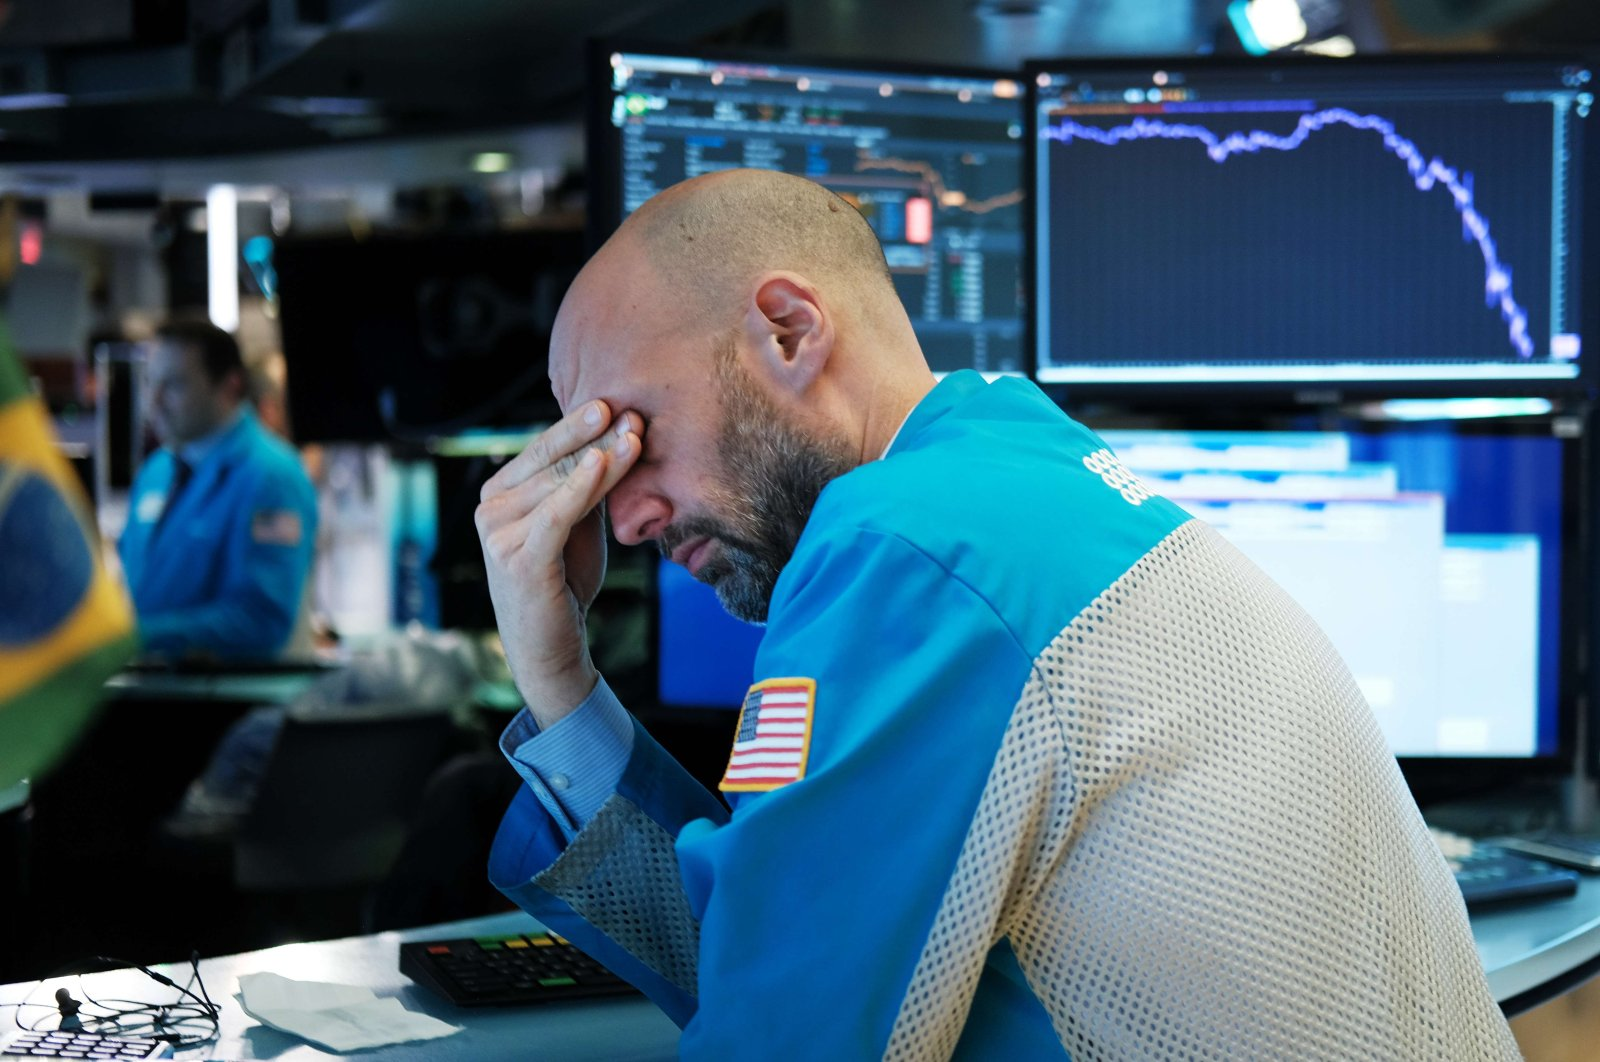 Traders work on the floor of the New York Stock Exchange (NYSE), New York City, March 18, 2020. (AFP)